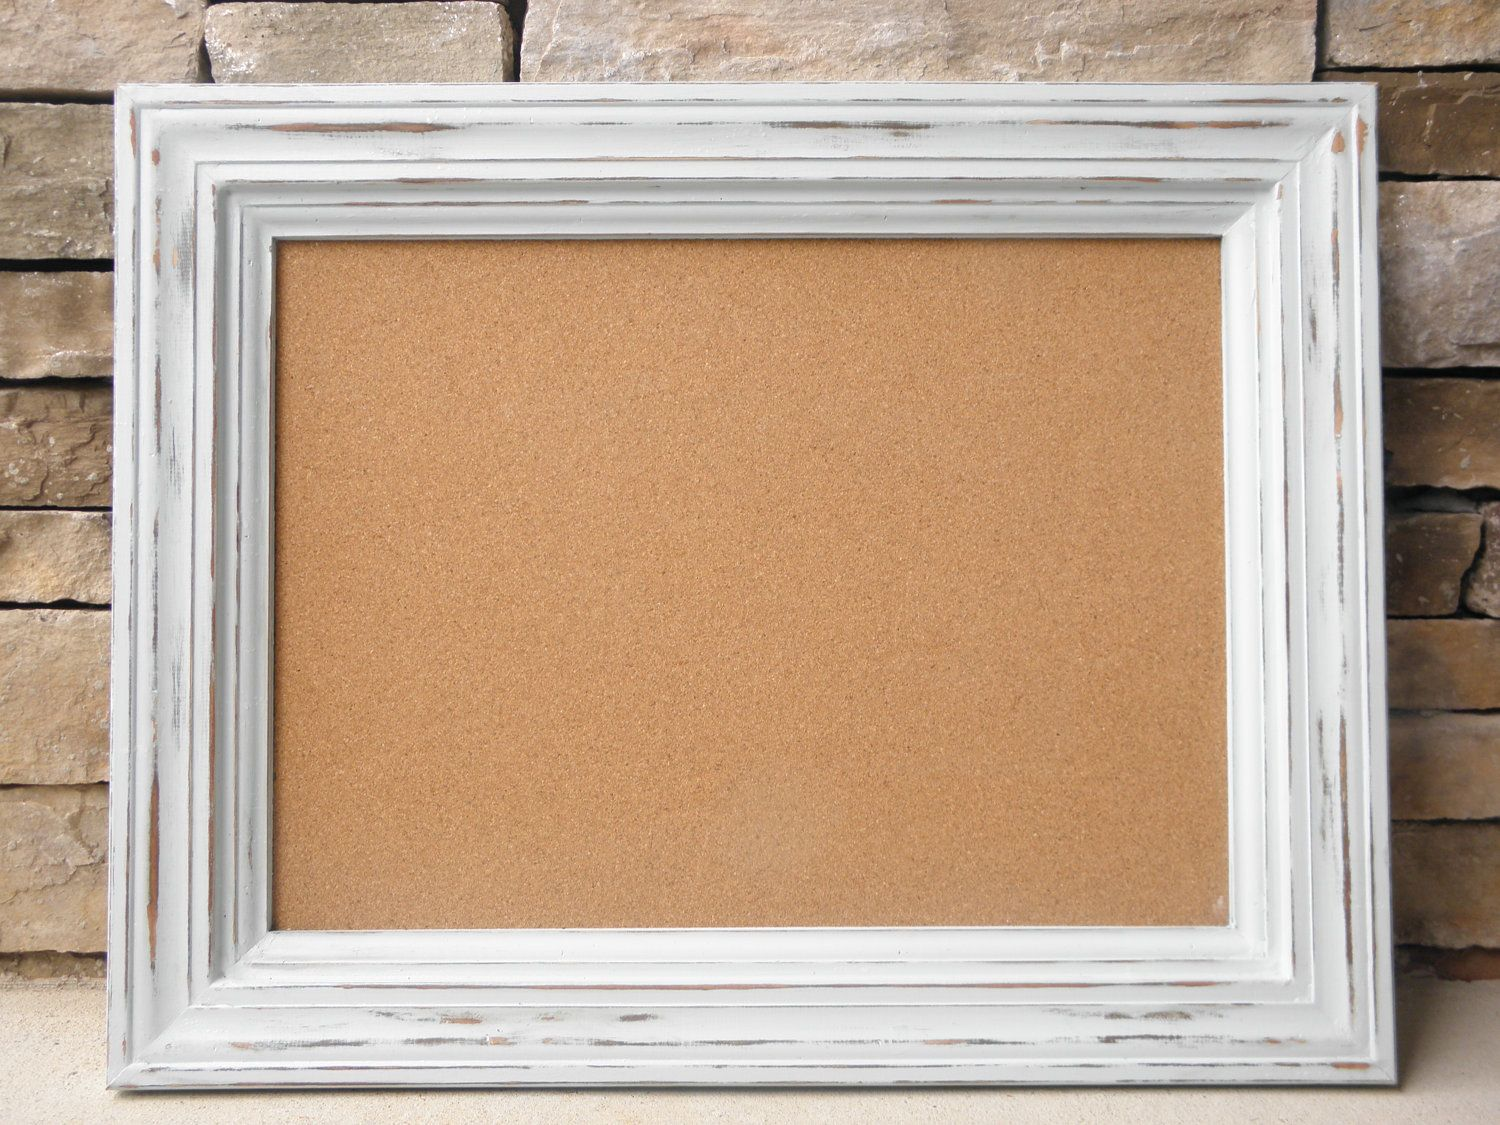 Cork Board Ideas #corkboard #corkboardideas